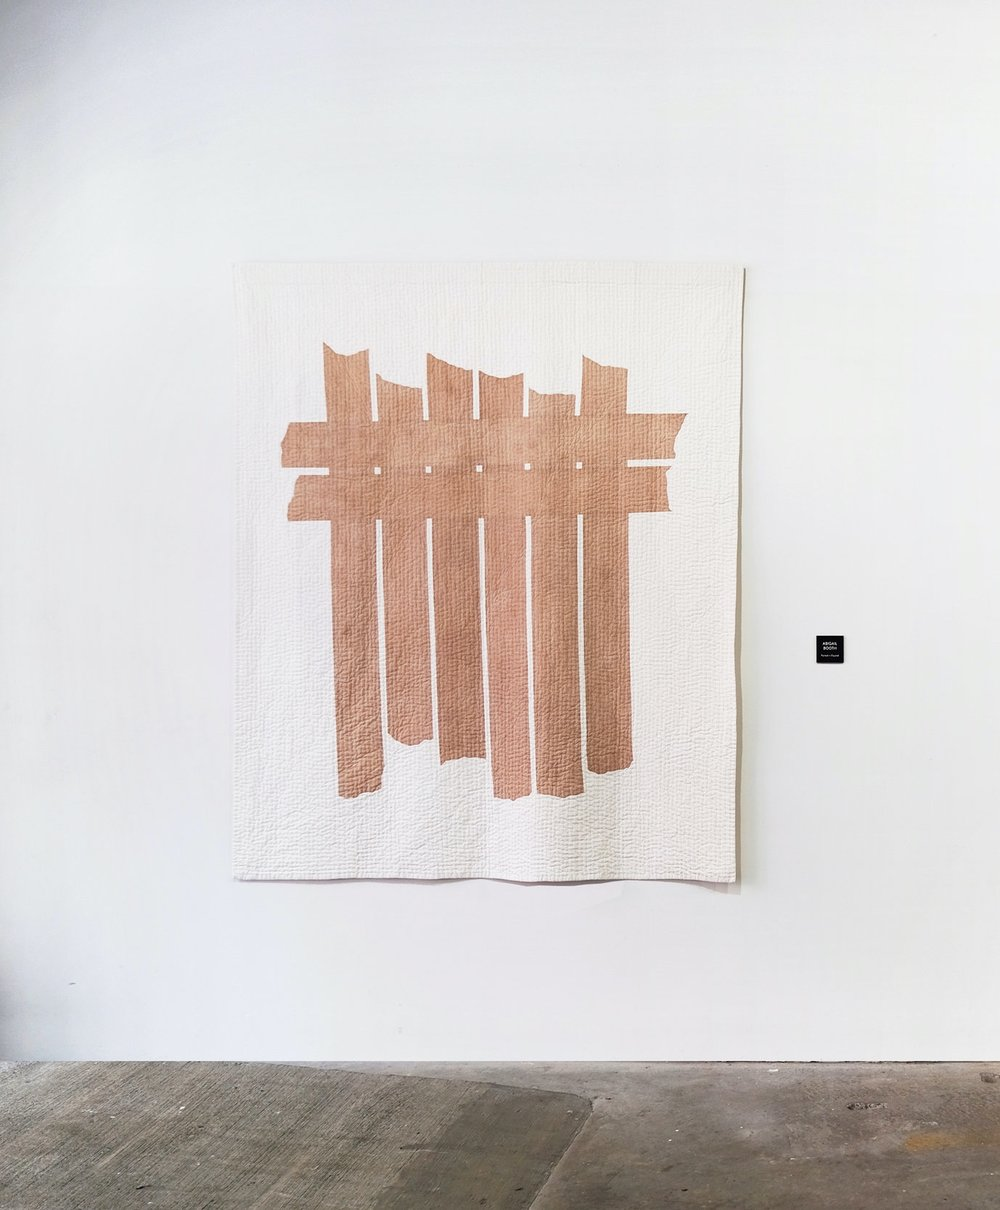 Blushed Bars (left)  | Artist: Abigail Booth /  Copperwork Quilt (right)  | Artist: Lesley Gold  Installation View: Piecework Collective, New York, 2017